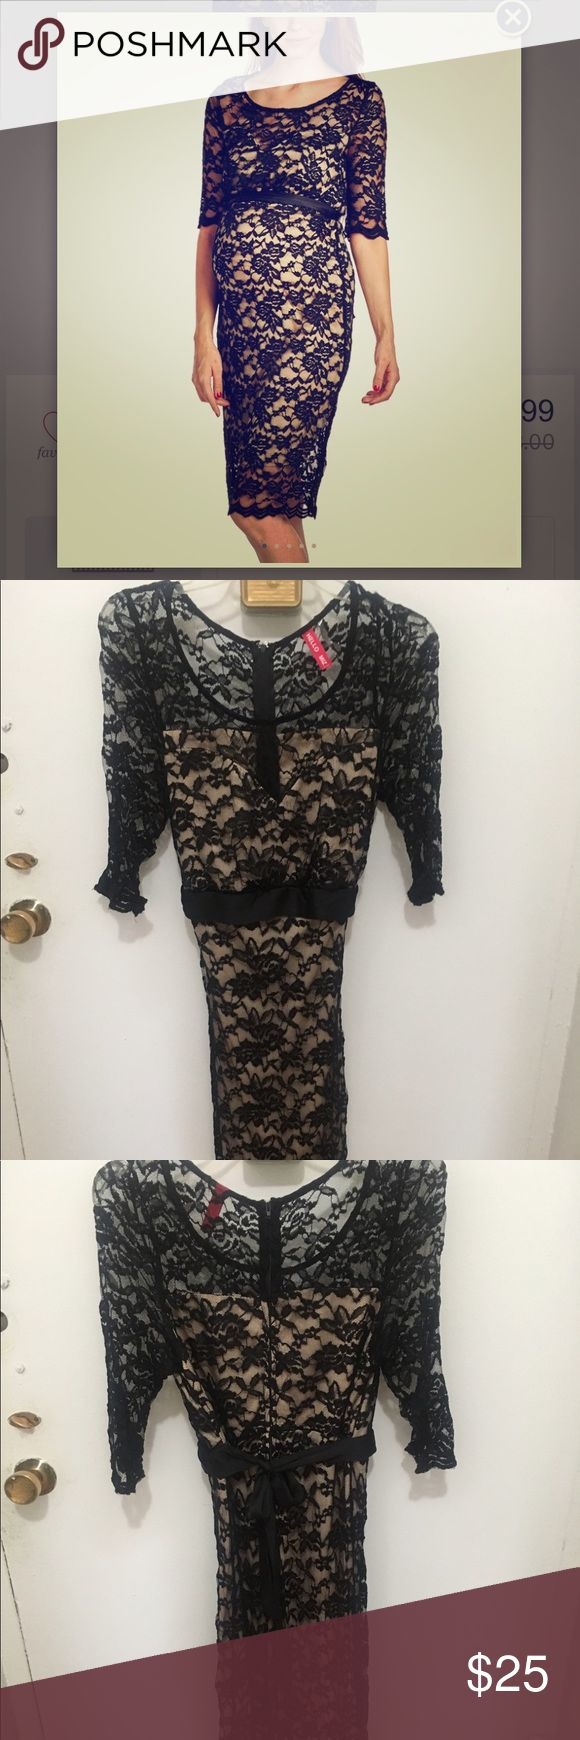 Maternity Black Lace long dress size small New without tags, never worn black lace with nude underlay maternity dress. Beautiful dress to make you feel beautiful during your pregnancy! Size small Hello Miz. Feel free to ask any questions! Always happy to bundle! Hello MIZ Dresses